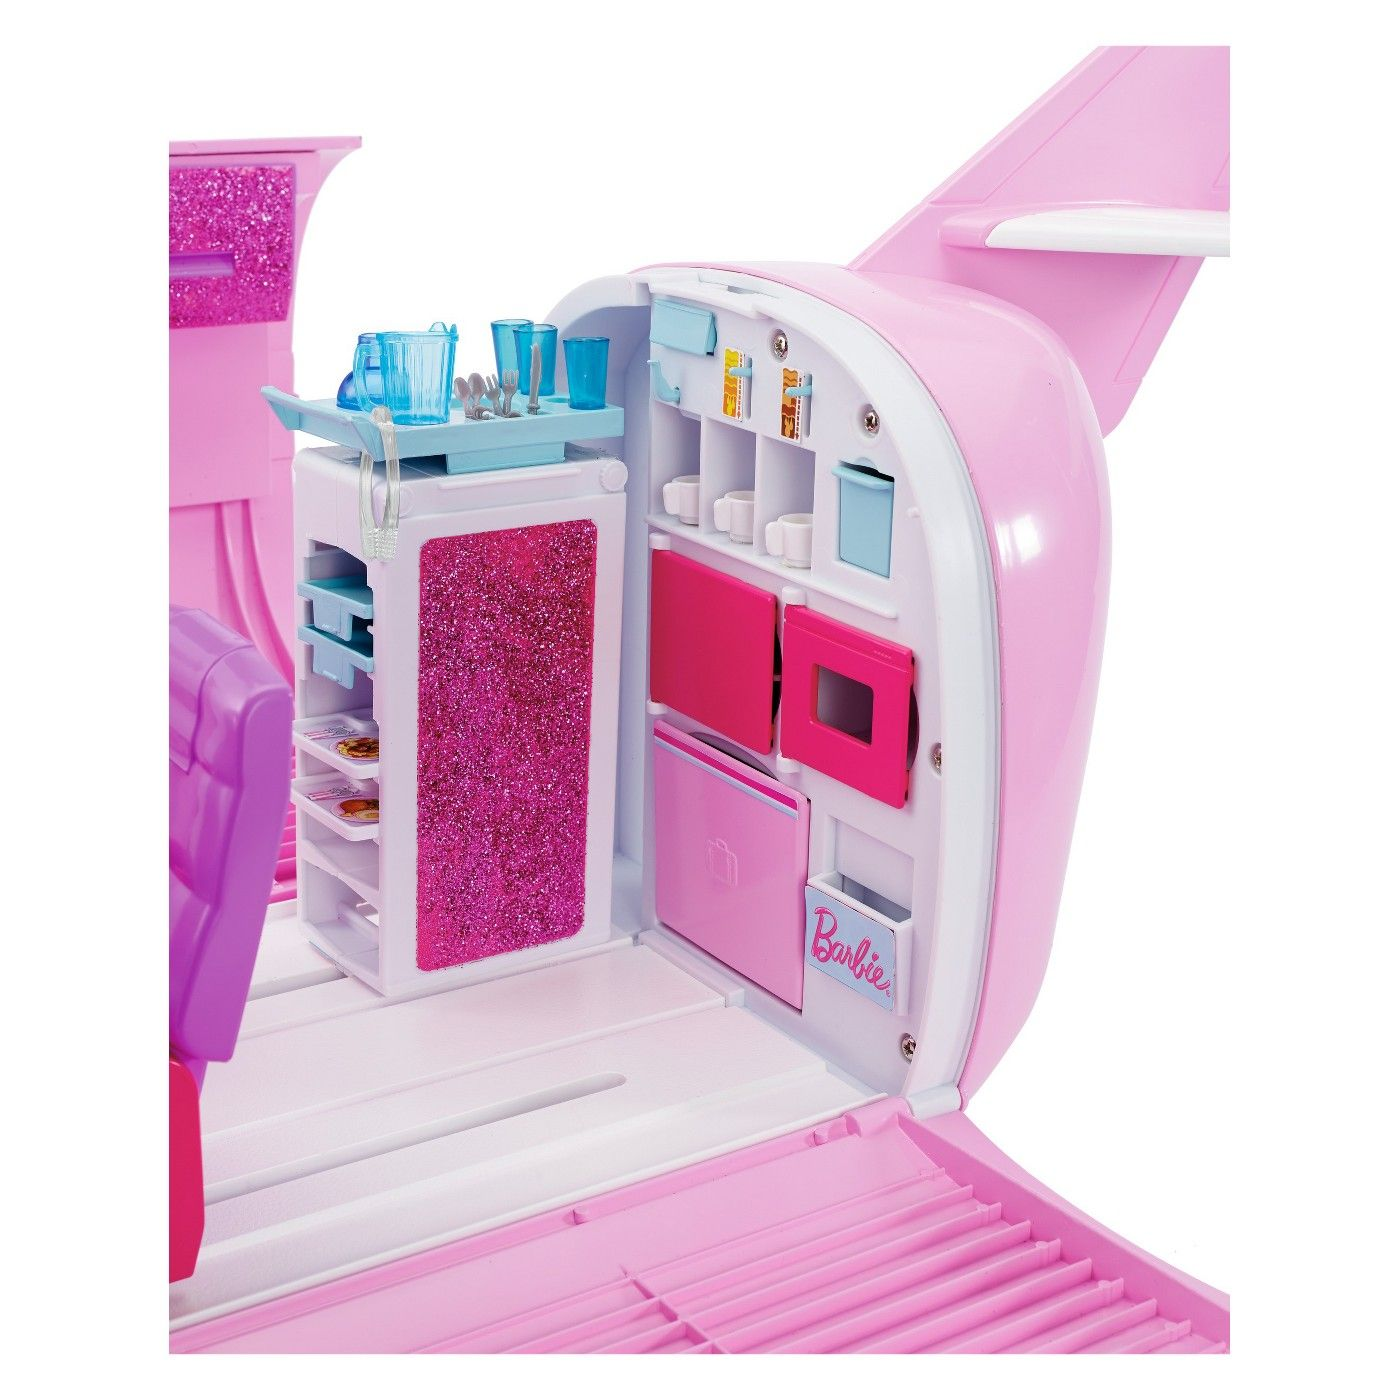 Barbie Pink Pport Glamour Jet - image 6 of 8 | Barbie ... on barbie friendship plane, barbie bus, barbie screaming, barbie food, barbie train, barbie toys, barbie car, barbie plane target, barbie boat, barbie mobile phone, barbie glamour shots, barbie house, barbie ball, barbie motorcycle, barbie airplane ebay, barbie pilot, barbie air plane, barbie dreamhouse, barbie airplane 1970s,